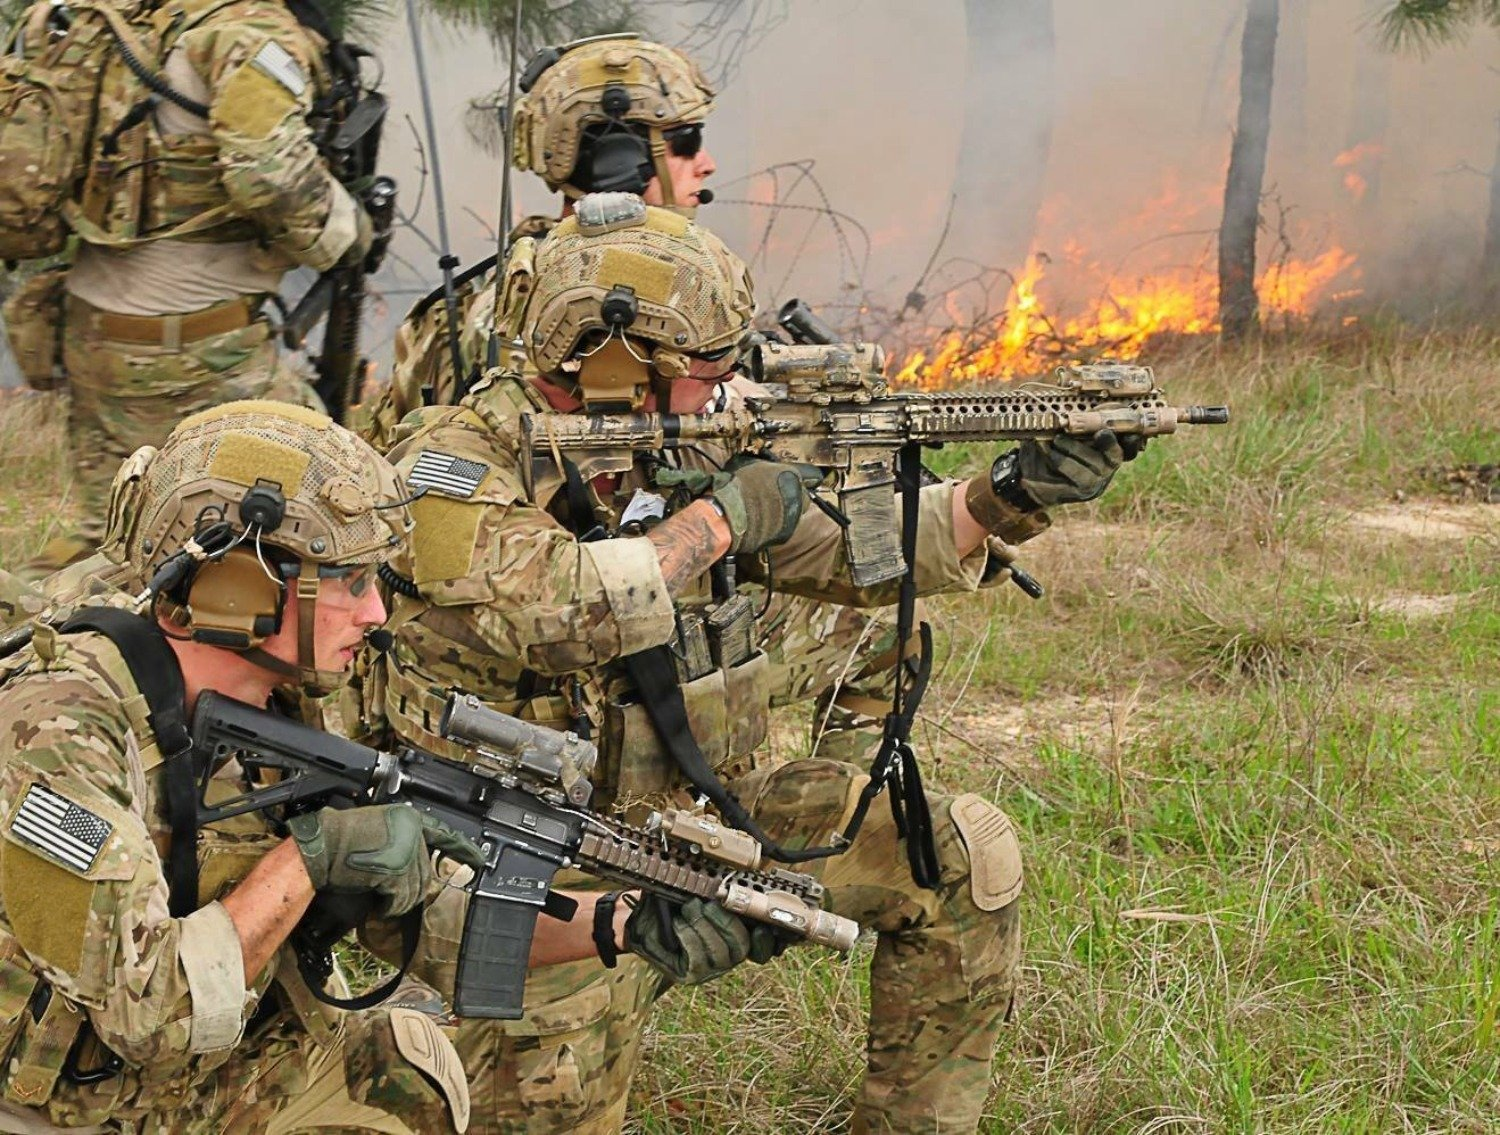 Dream of Becoming a Navy Seal or Part of Delta Force? Here is the Ultimate Guide to U.S. Special Forces.